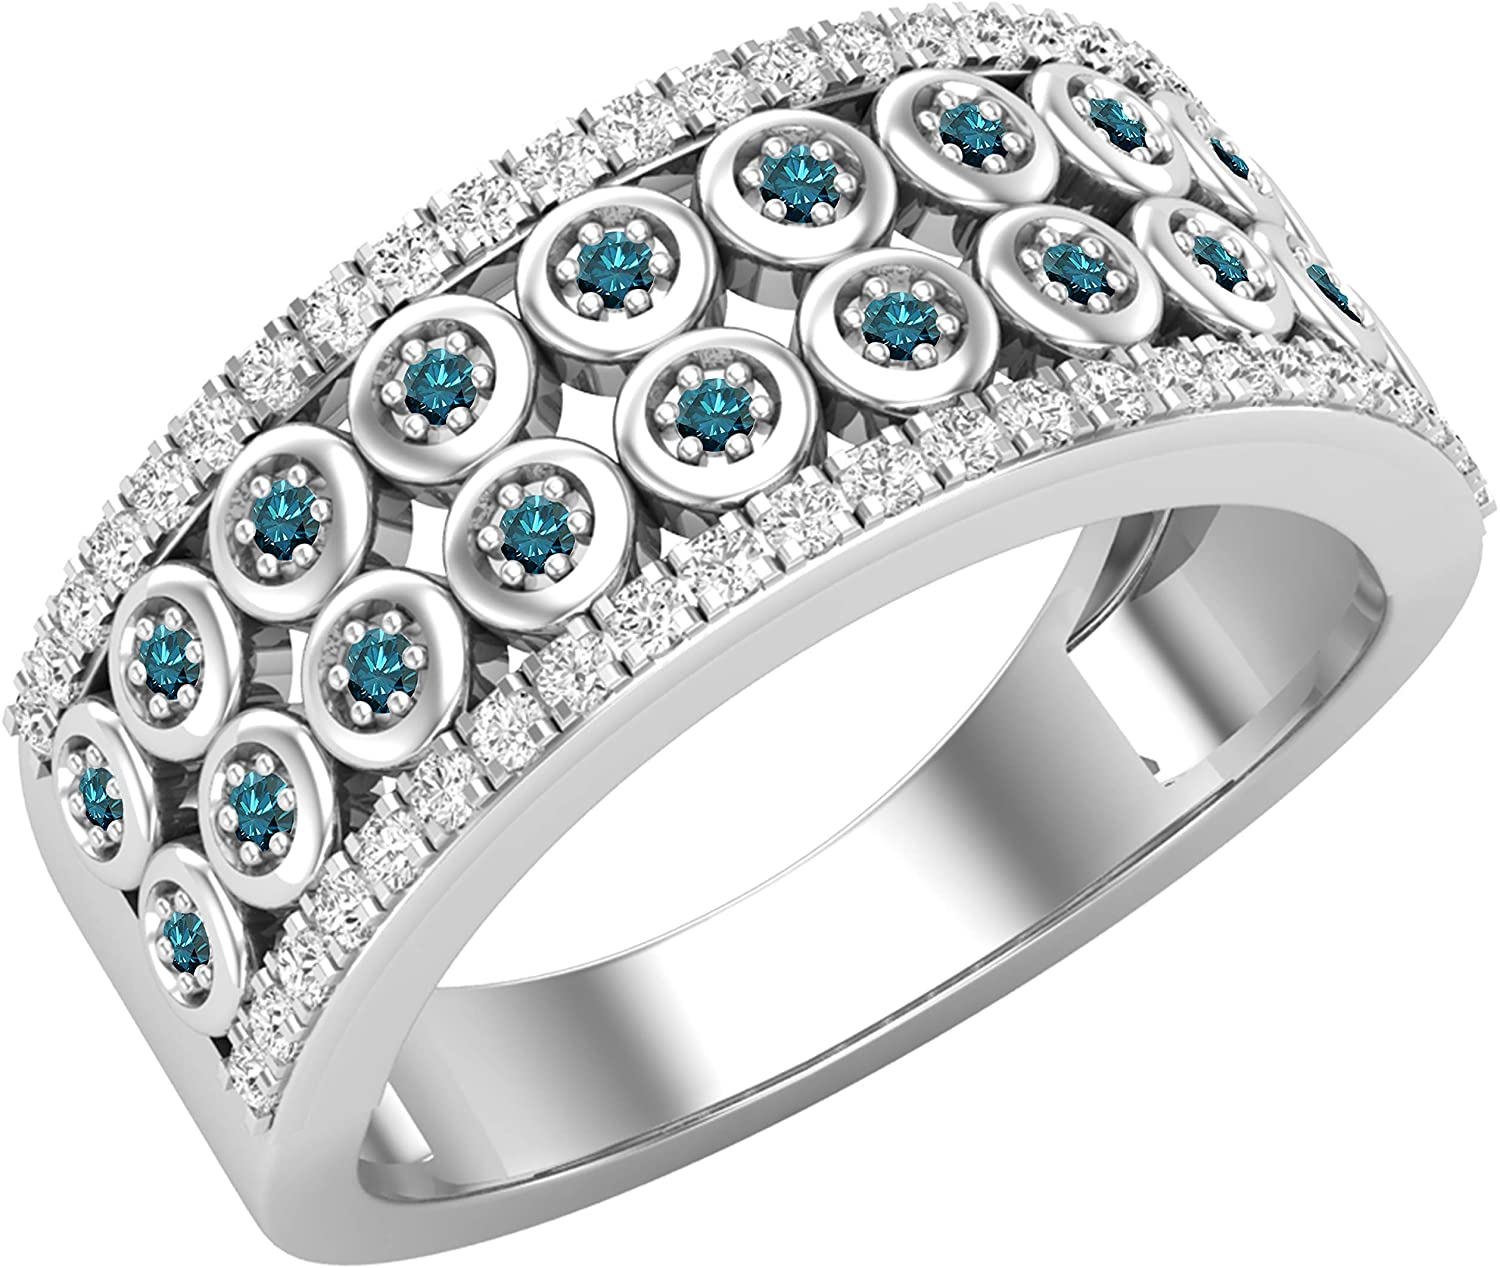 Dazzlingrock Collection Round Gemstone & White Diamond Ladies Bridal Wedding Anniversary Band, Available in Various Gemstones in 10K/14K/18K Gold & 925 Sterling Silver